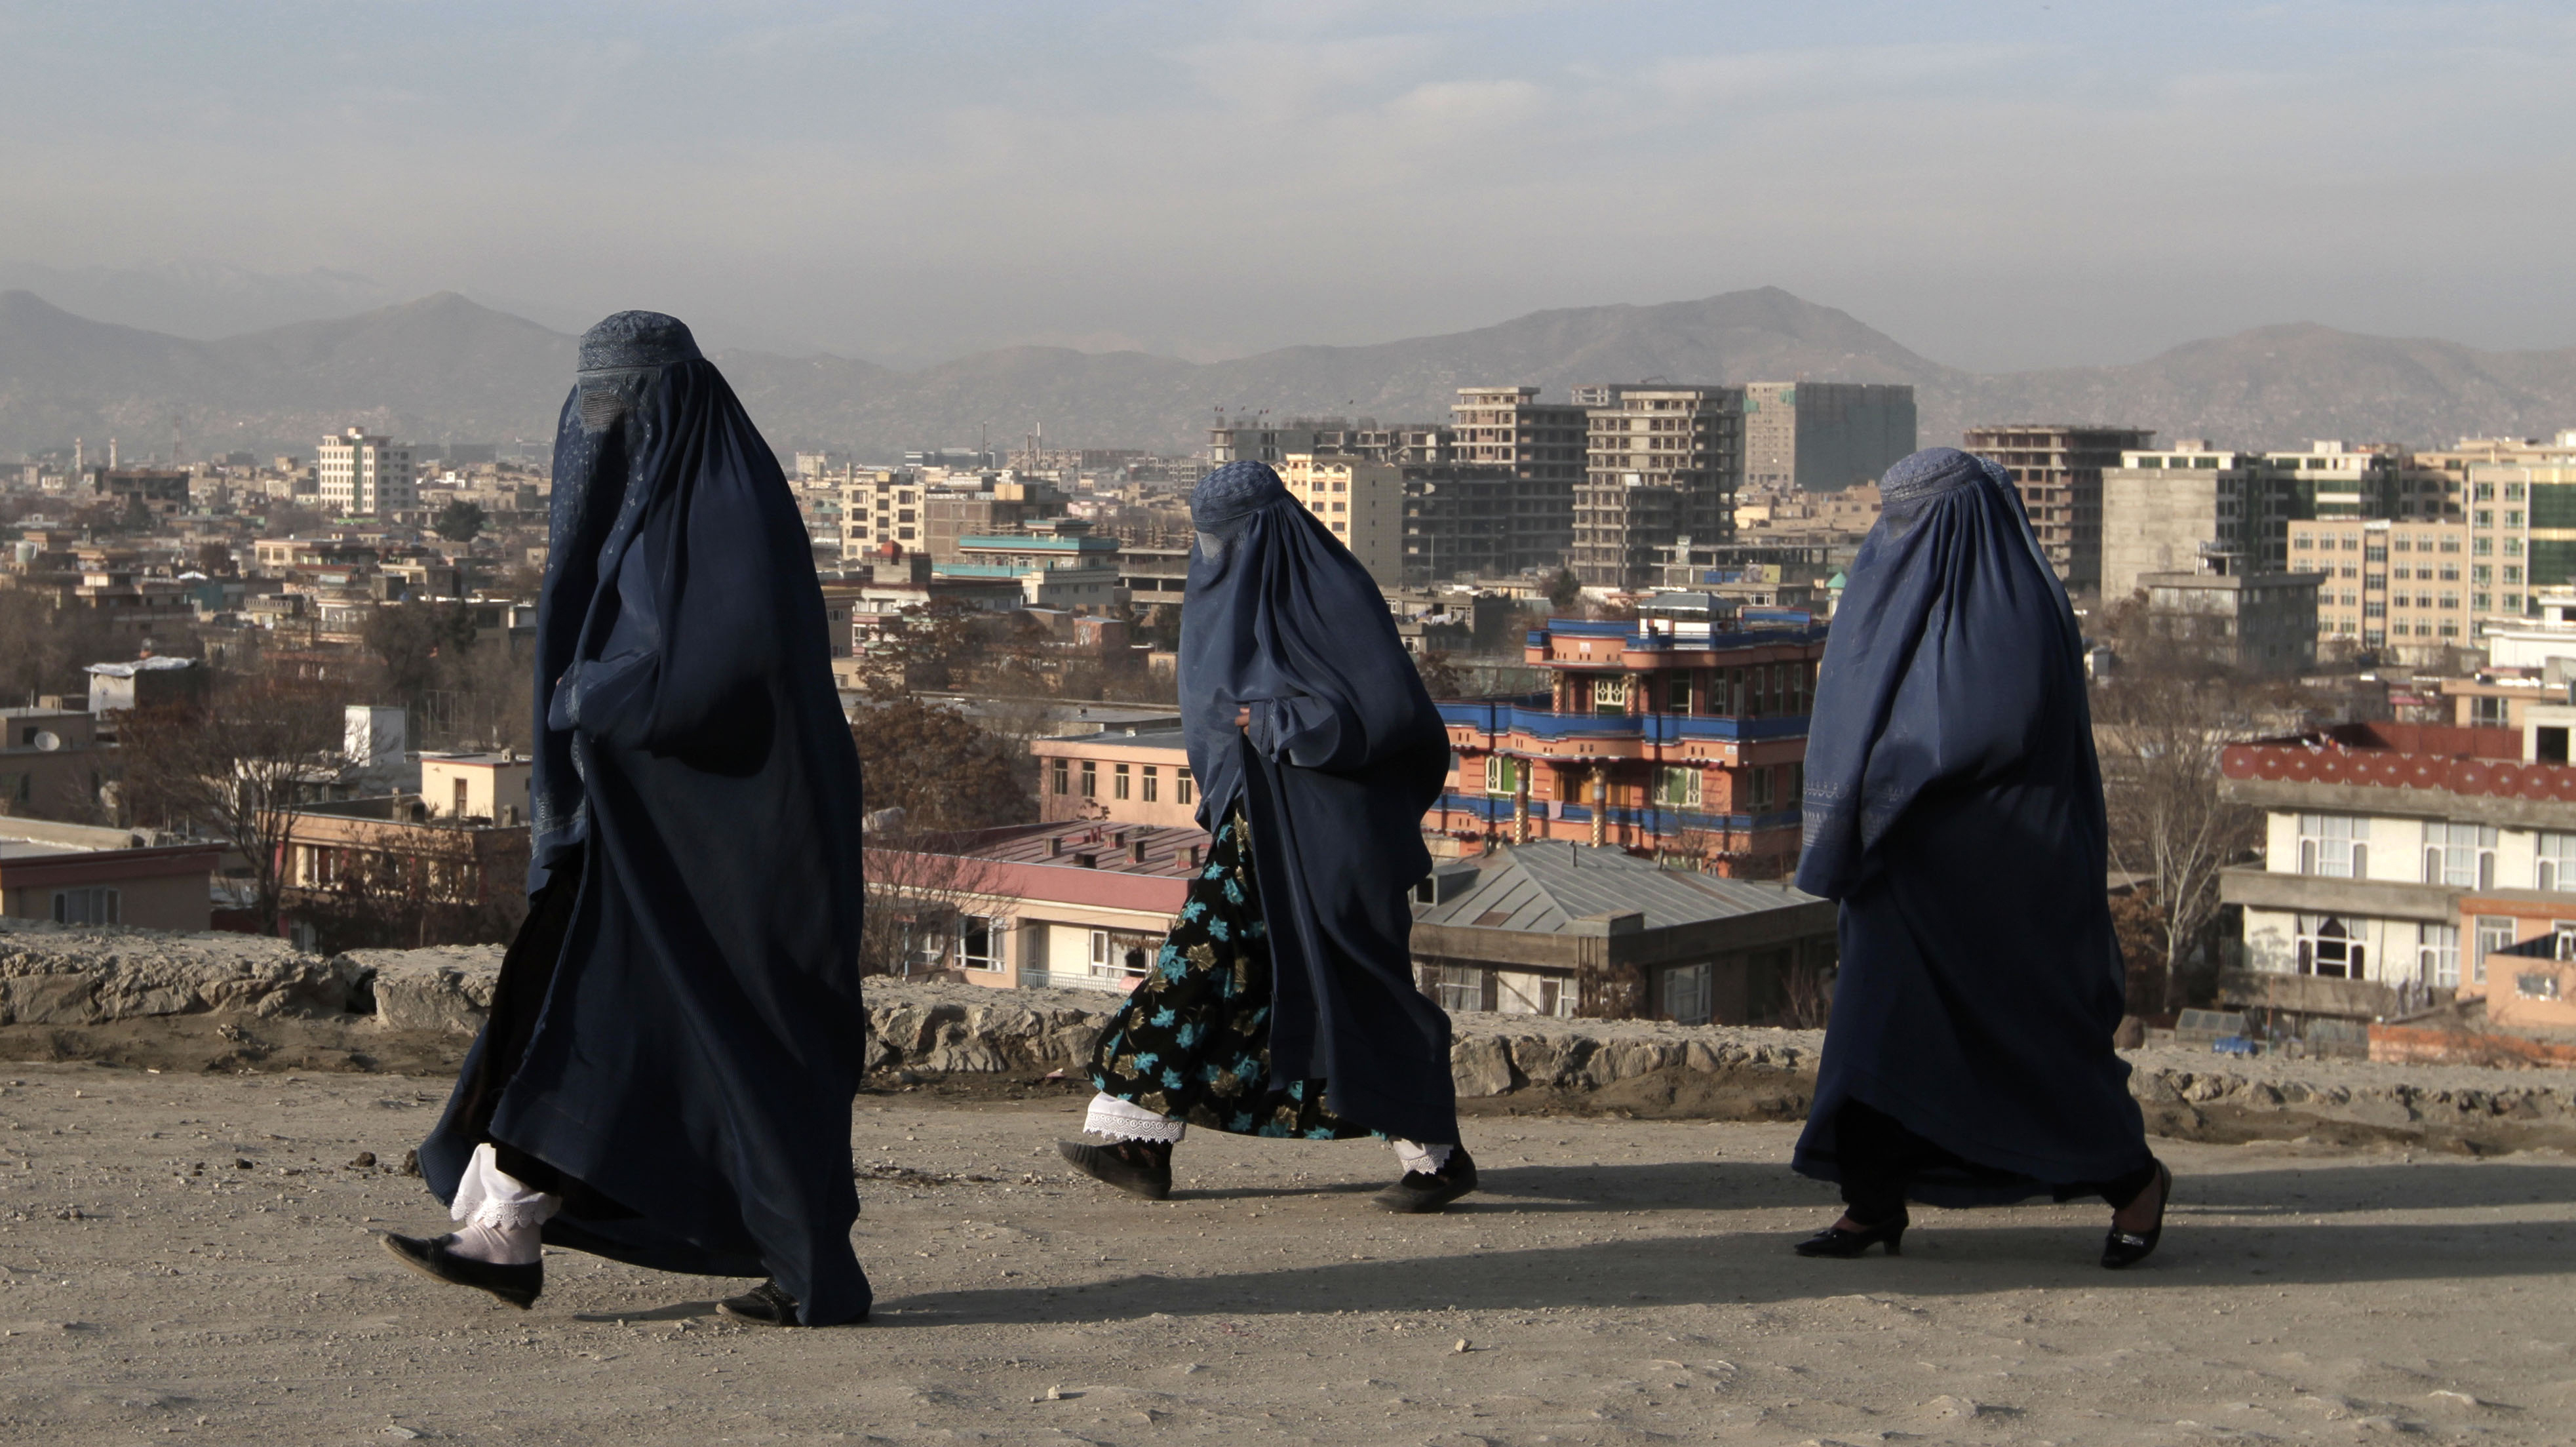 Facing Big Changes, Anxious Afghans Hope For The Best In